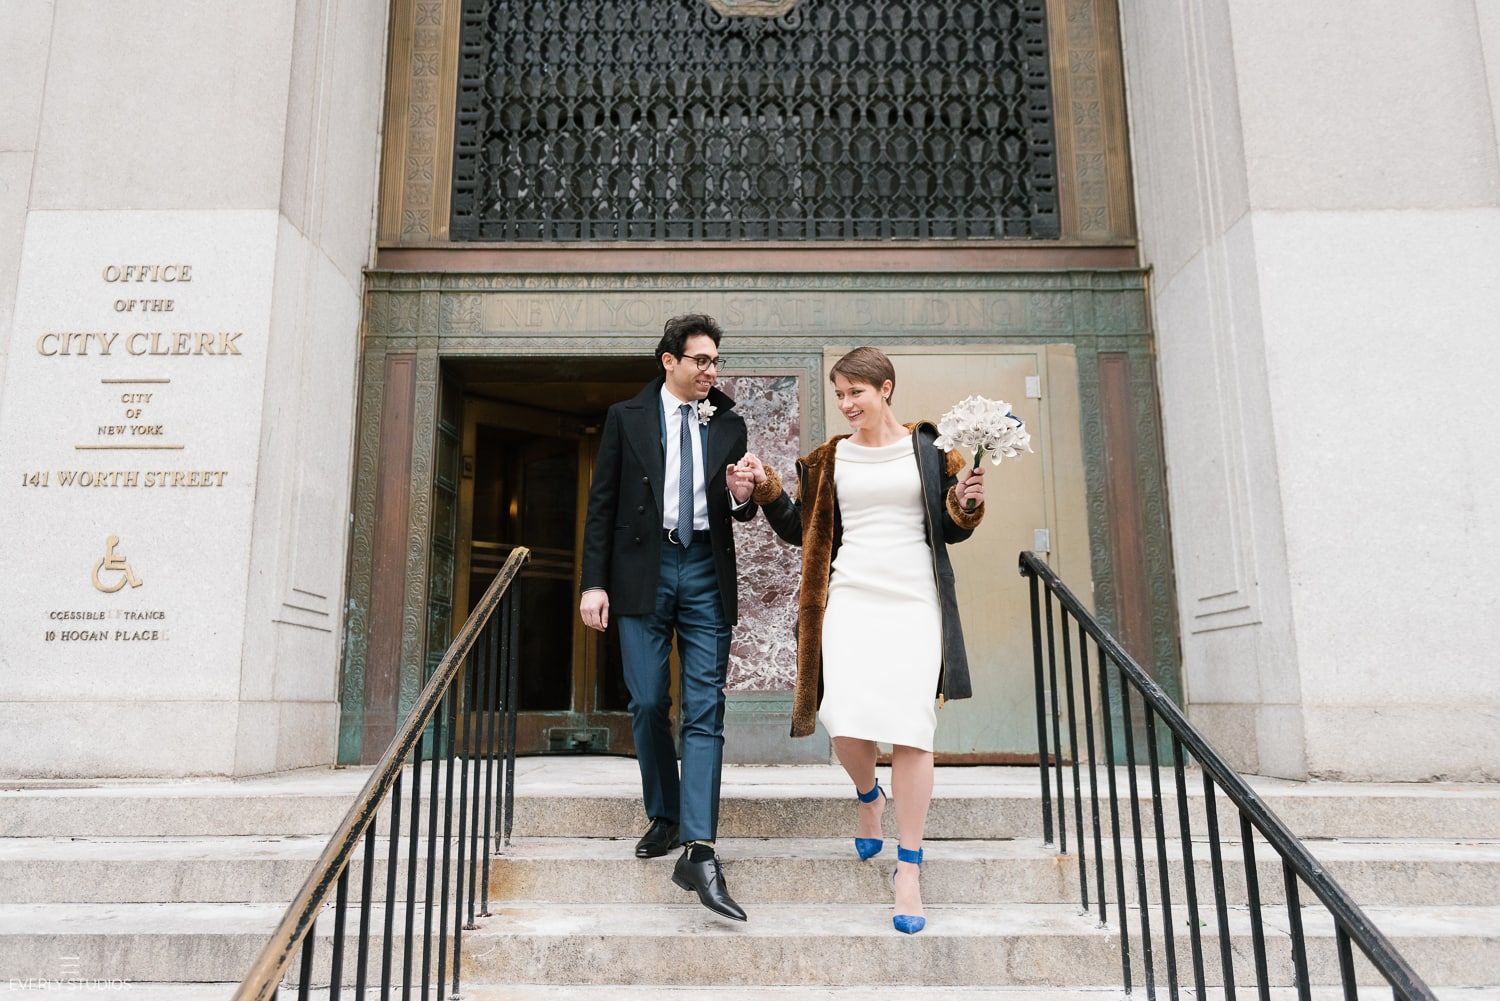 New York City Hall elopement wedding. Photos by New York wedding photographer Everly Studios, www.everlystudios.com